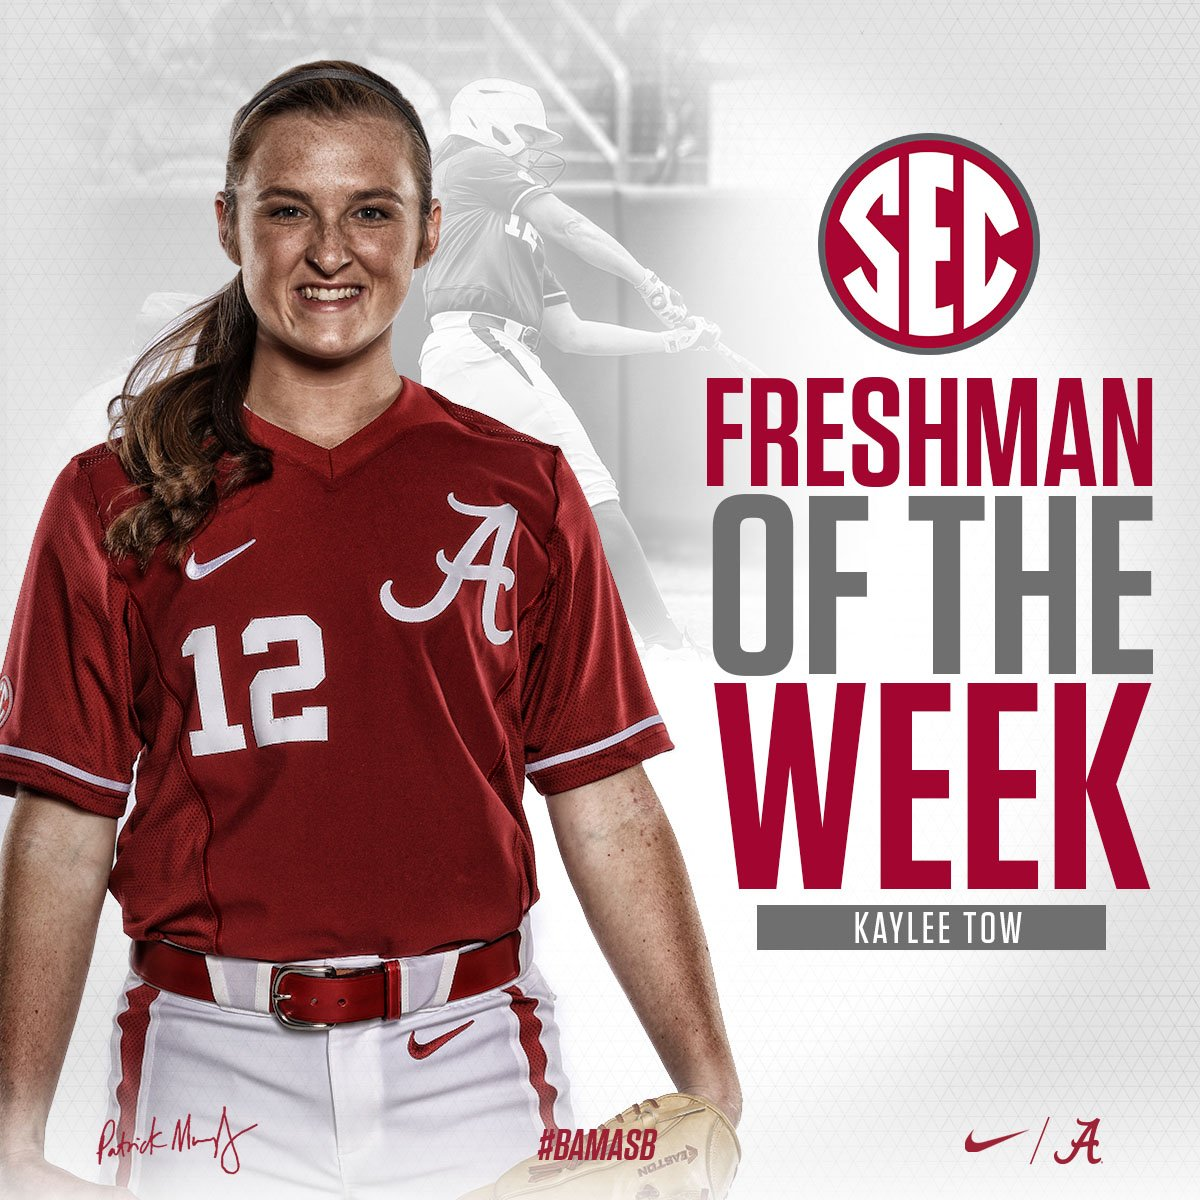 Madisonville's Tow named SEC Softball Freshman of the Week